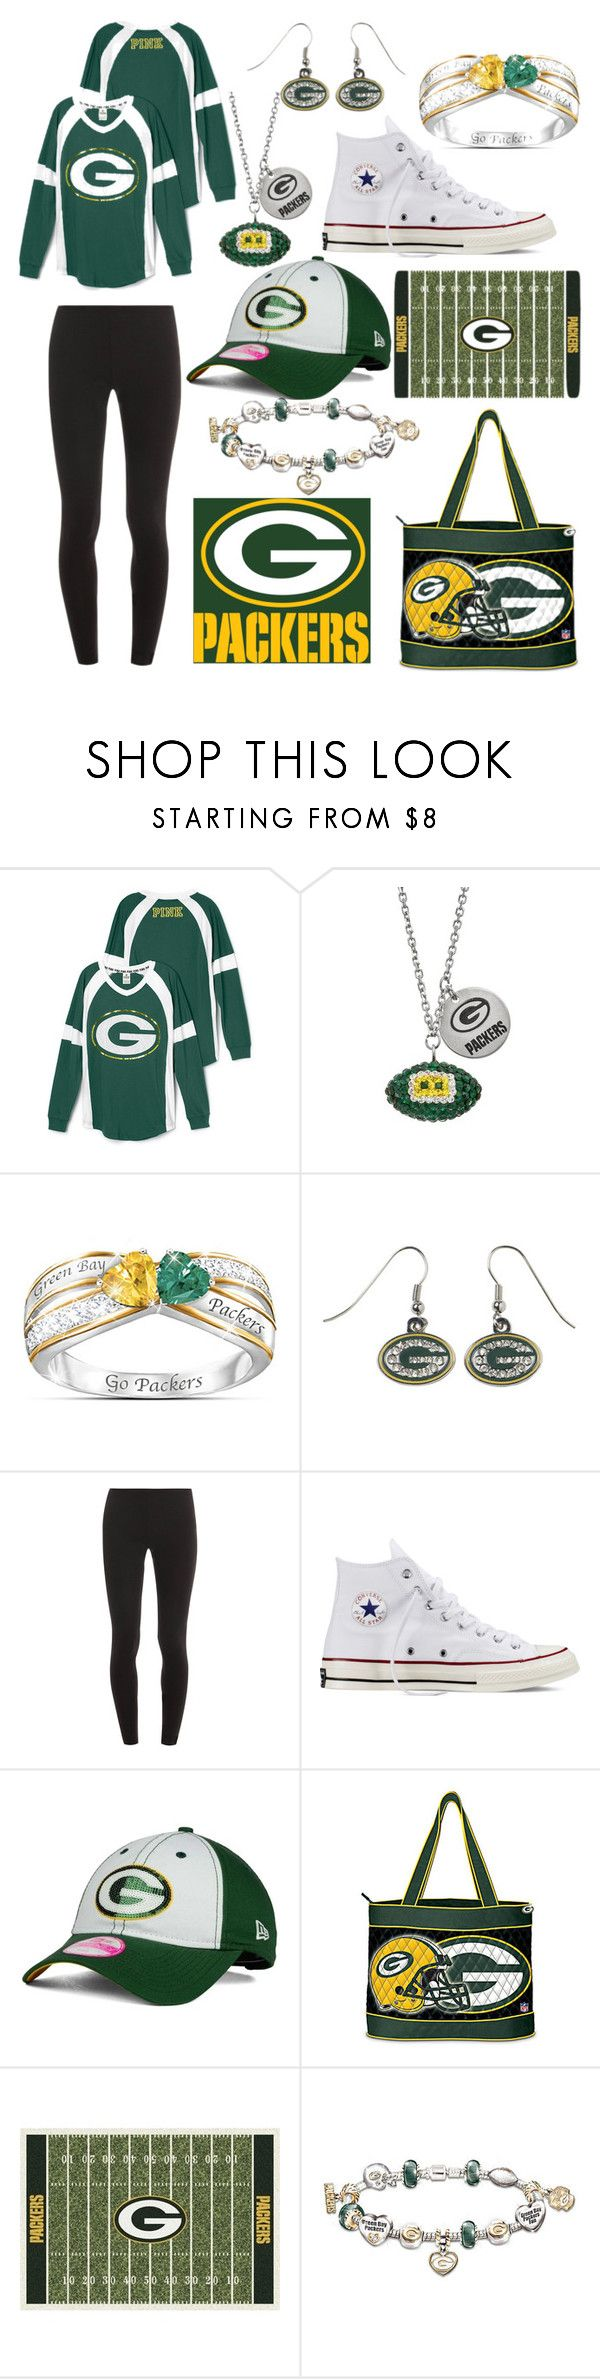 best 25 green bay ideas on pinterest green bay packers fans